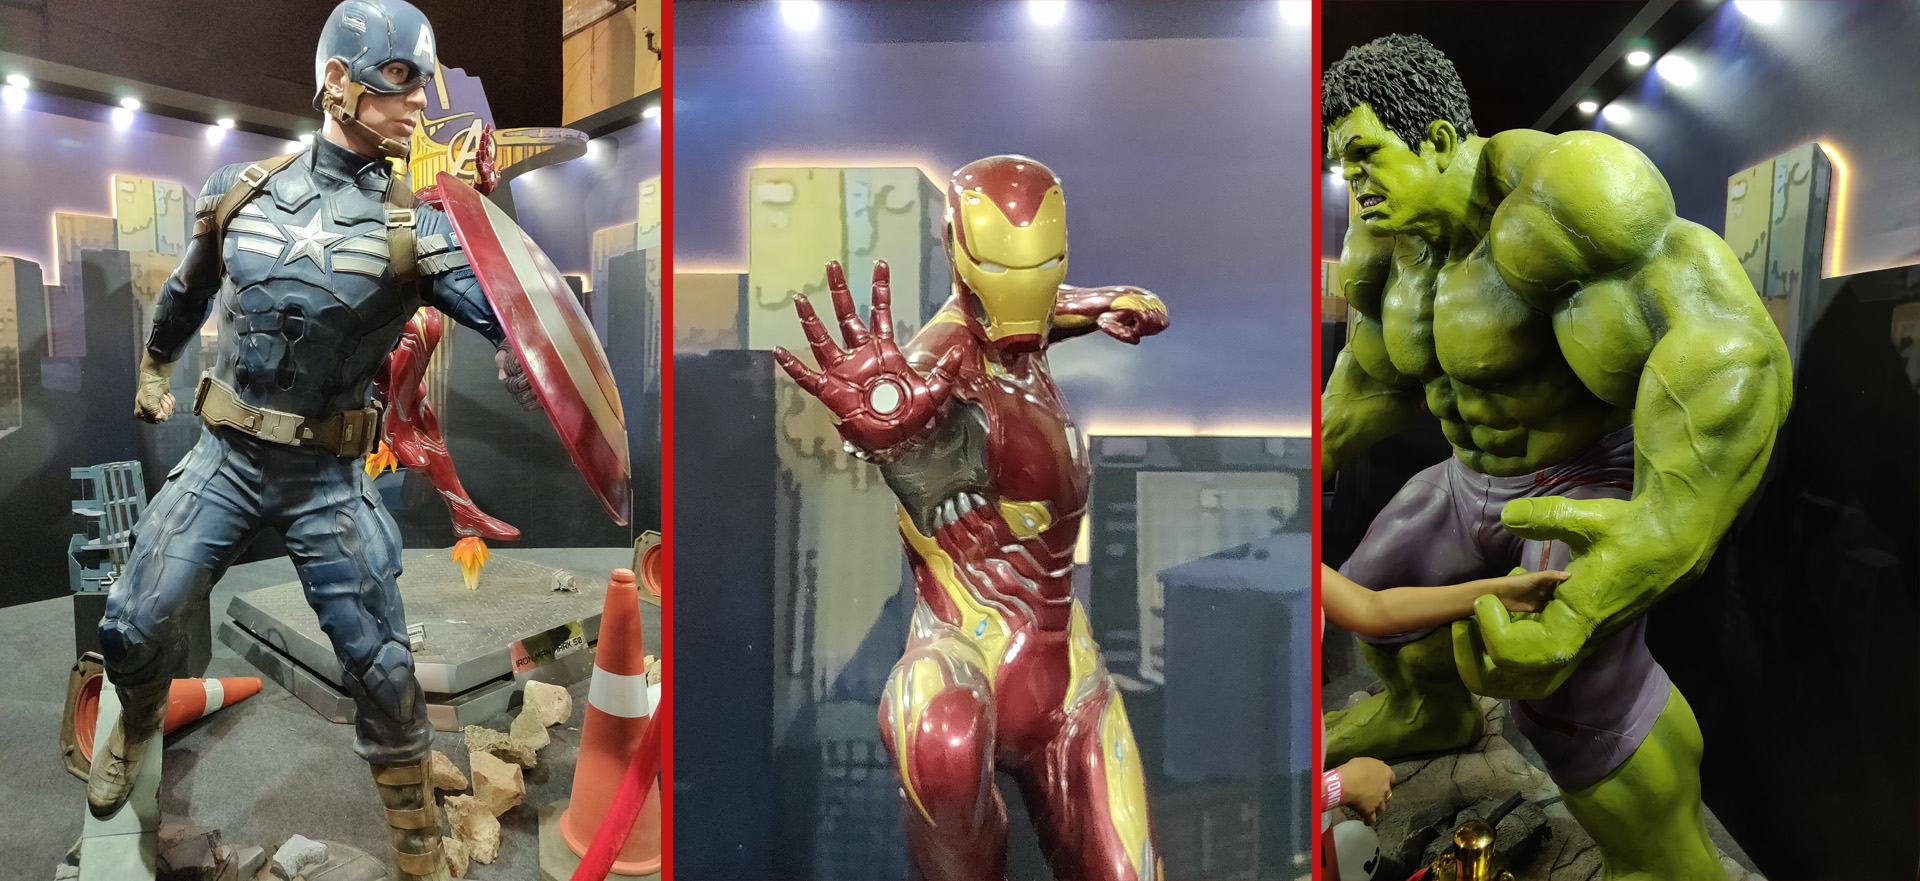 Comic Con Mumbai 2018 - Marvel Studios Booth